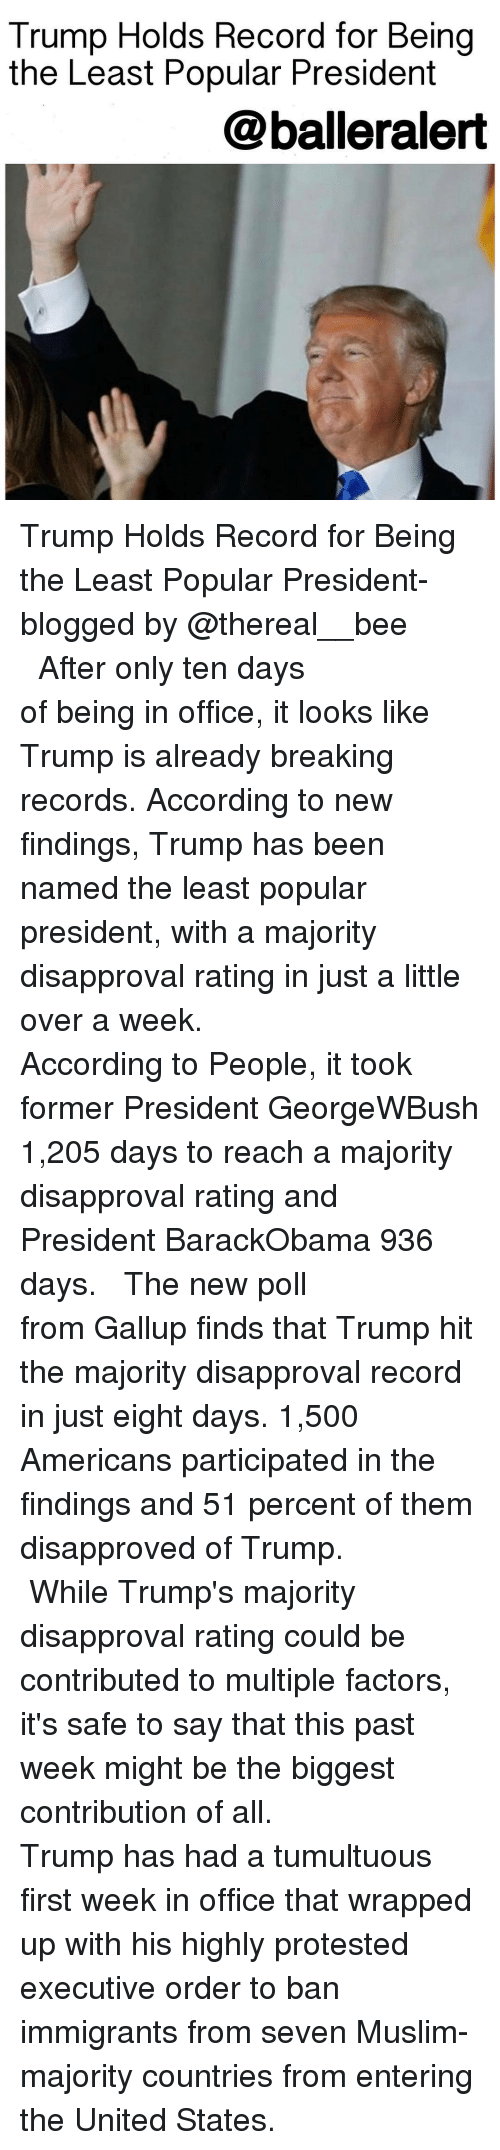 Disapproval: Trump Holds Record for Being  the Least Popular President  balleralert Trump Holds Record for Being the Least Popular President-blogged by @thereal__bee ⠀⠀⠀⠀⠀⠀⠀⠀⠀ ⠀⠀⠀⠀⠀⠀⠀⠀⠀ After only ten days of being in office, it looks like Trump is already breaking records. According to new findings, Trump has been named the least popular president, with a majority disapproval rating in just a little over a week. ⠀⠀⠀⠀⠀⠀⠀⠀⠀ ⠀⠀⠀⠀⠀⠀⠀⠀⠀ According to People, it took former President GeorgeWBush 1,205 days to reach a majority disapproval rating and President BarackObama 936 days. ⠀⠀⠀⠀⠀⠀⠀⠀⠀ ⠀⠀⠀⠀⠀⠀⠀⠀⠀ The new poll from Gallup finds that Trump hit the majority disapproval record in just eight days. 1,500 Americans participated in the findings and 51 percent of them disapproved of Trump. ⠀⠀⠀⠀⠀⠀⠀⠀⠀ ⠀⠀⠀⠀⠀⠀⠀⠀⠀ While Trump's majority disapproval rating could be contributed to multiple factors, it's safe to say that this past week might be the biggest contribution of all. ⠀⠀⠀⠀⠀⠀⠀⠀⠀ ⠀⠀⠀⠀⠀⠀⠀⠀⠀ Trump has had a tumultuous first week in office that wrapped up with his highly protested executive order to ban immigrants from seven Muslim-majority countries from entering the United States.